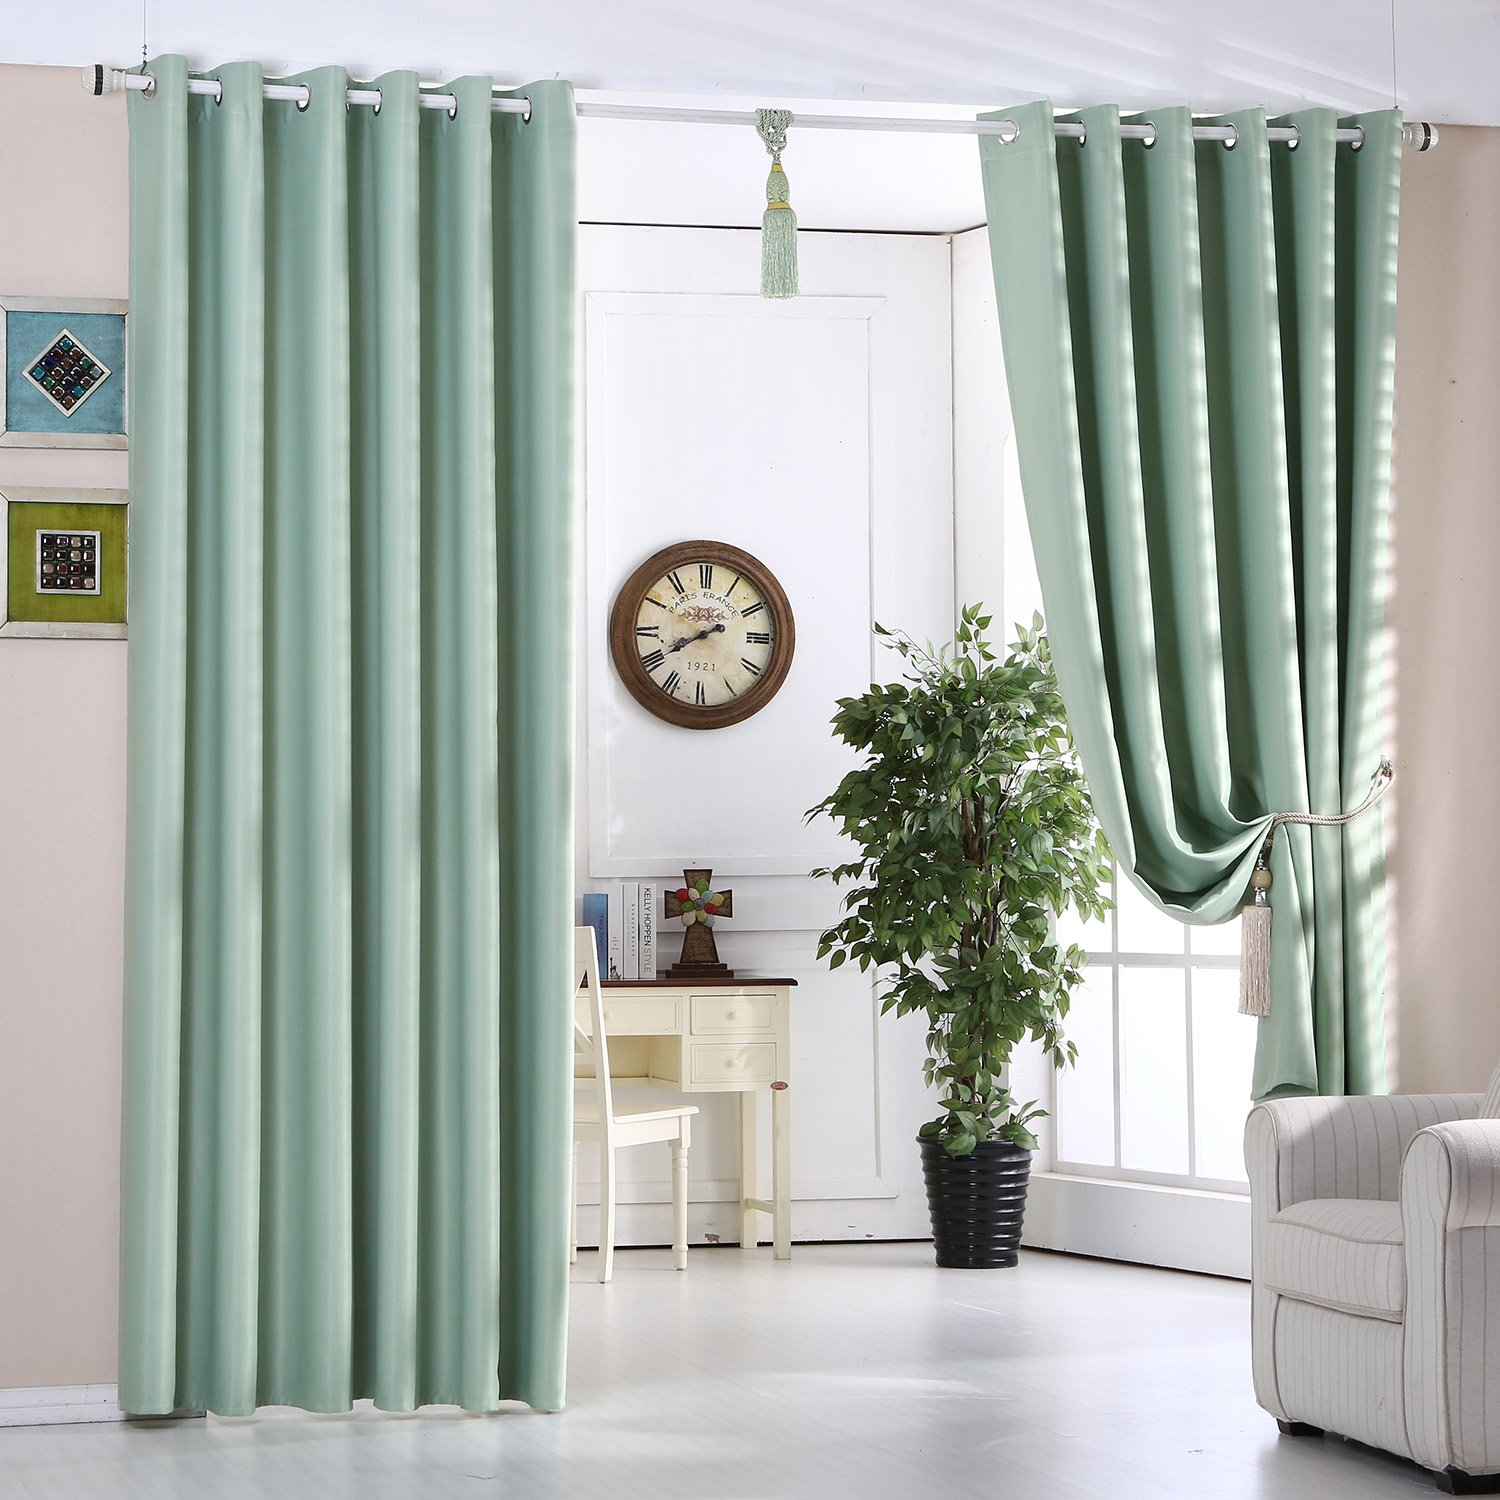 Mint Green Blackout Curtains Ready Made Ring Top Eyelet Energy Saving Thermal Insulated 66